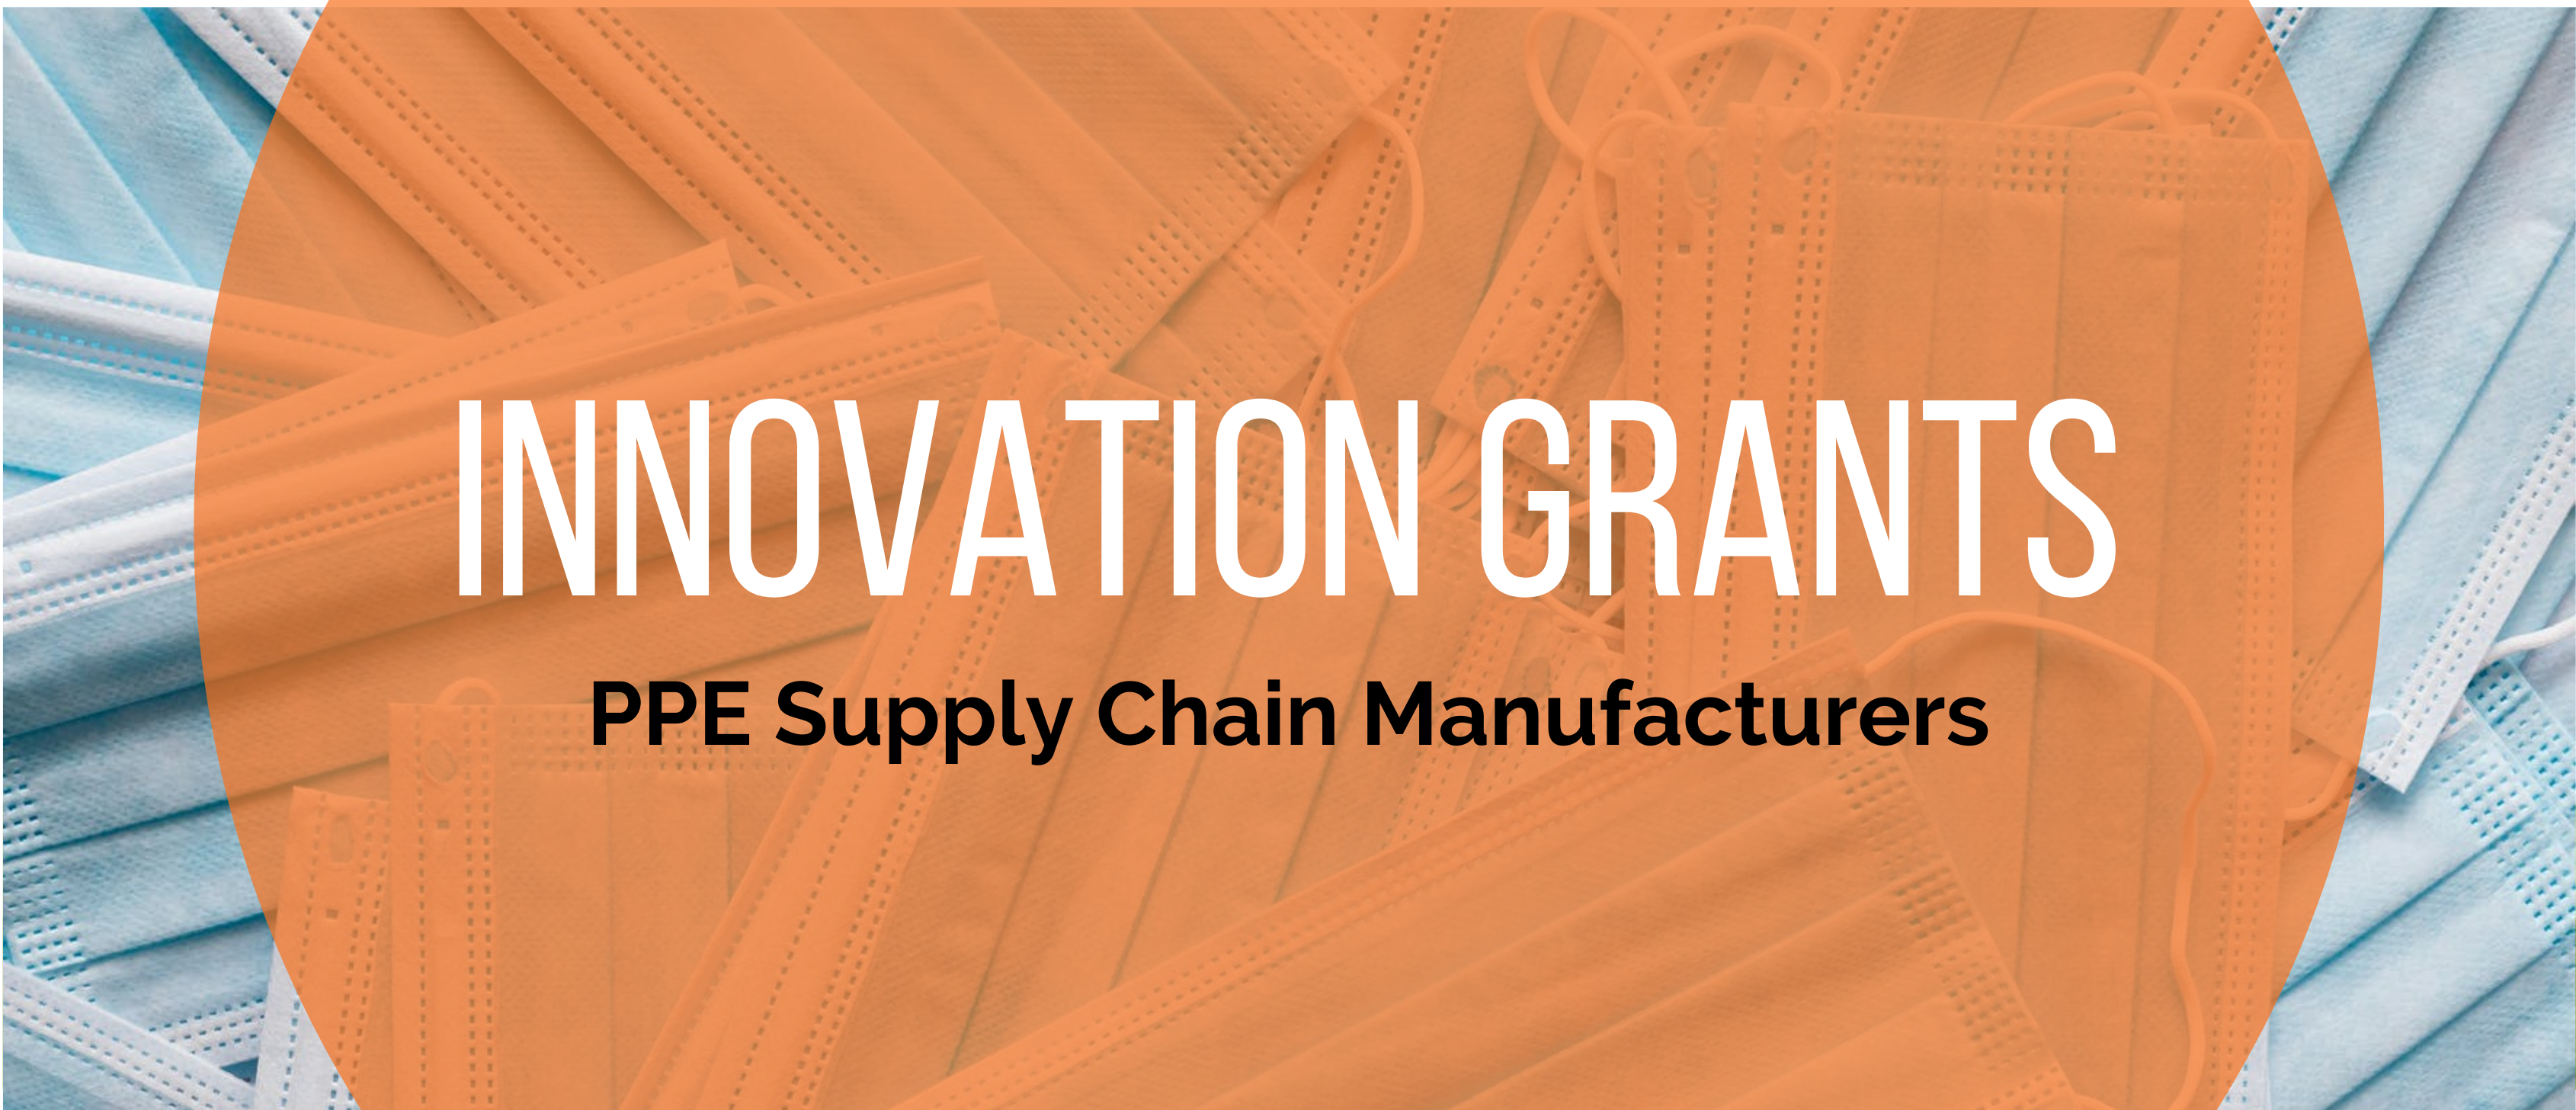 Innovation Grants for PPE Supply Chain Manufacturers Webpage Banner